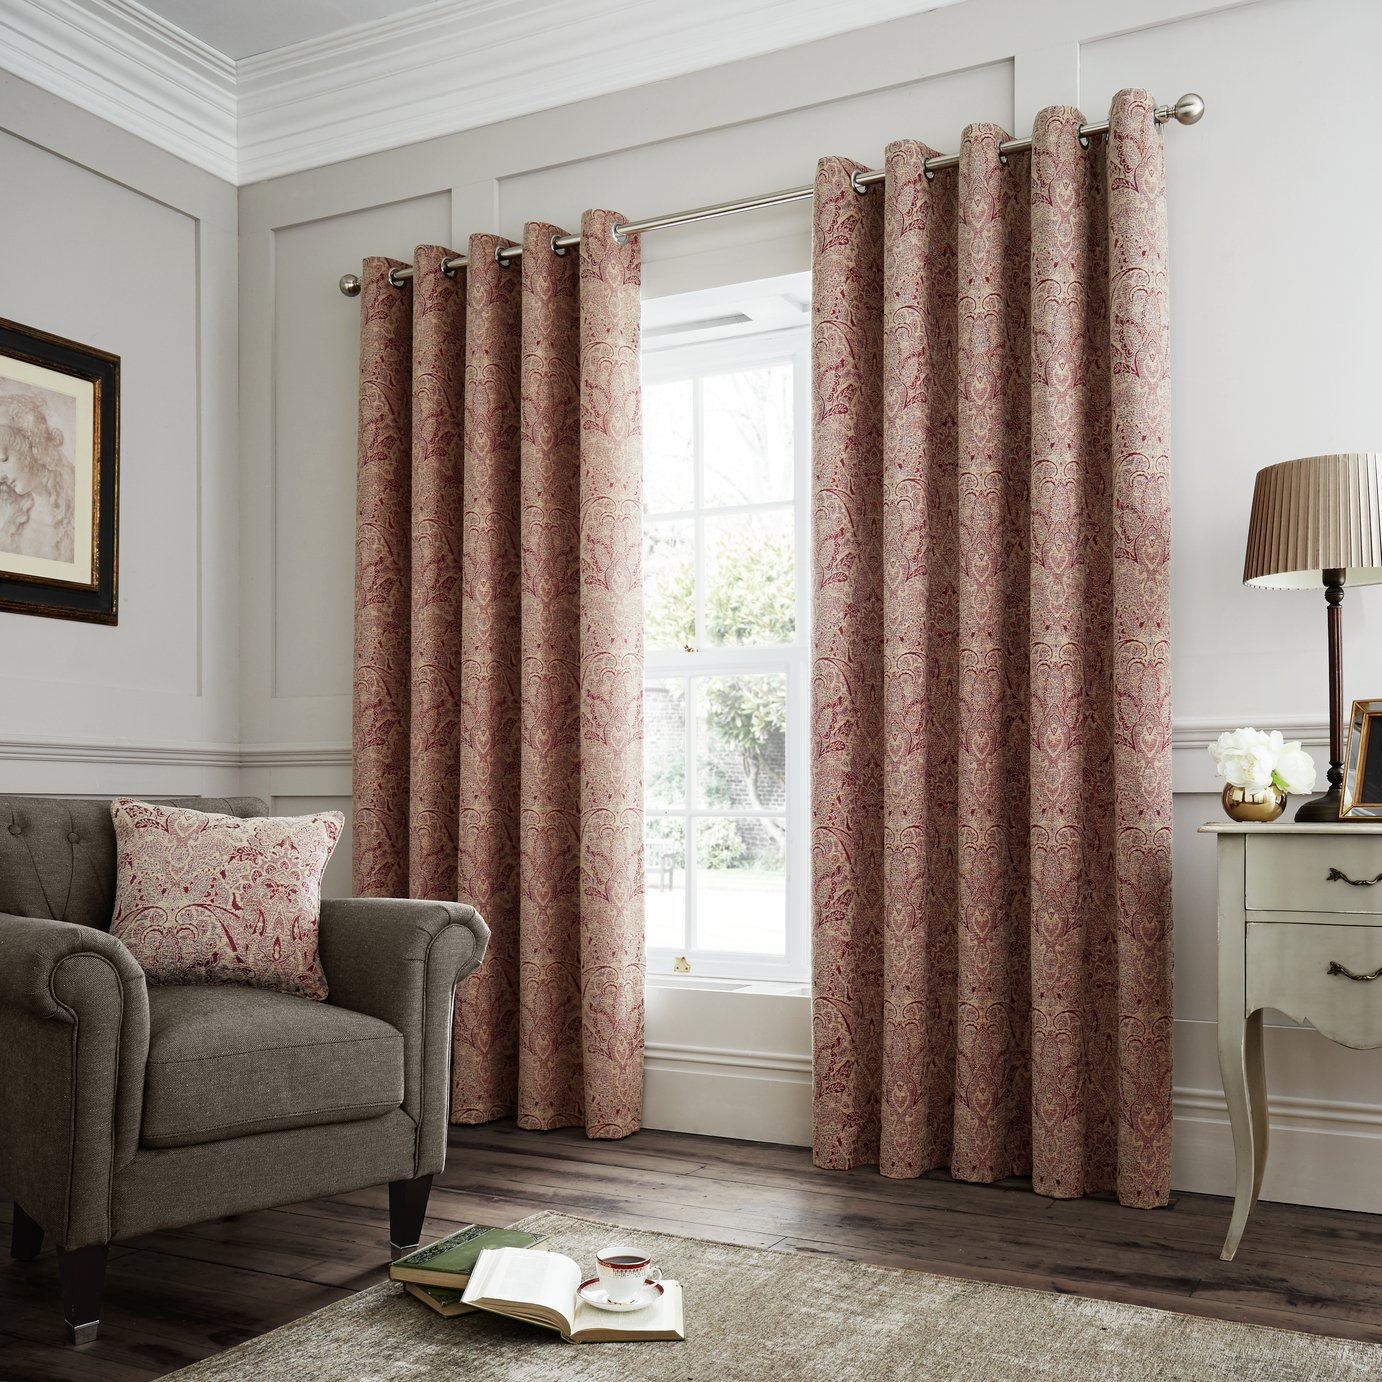 Curtina Whitcliffe Lined Eyelet Curtains - 168x137cm - Multi